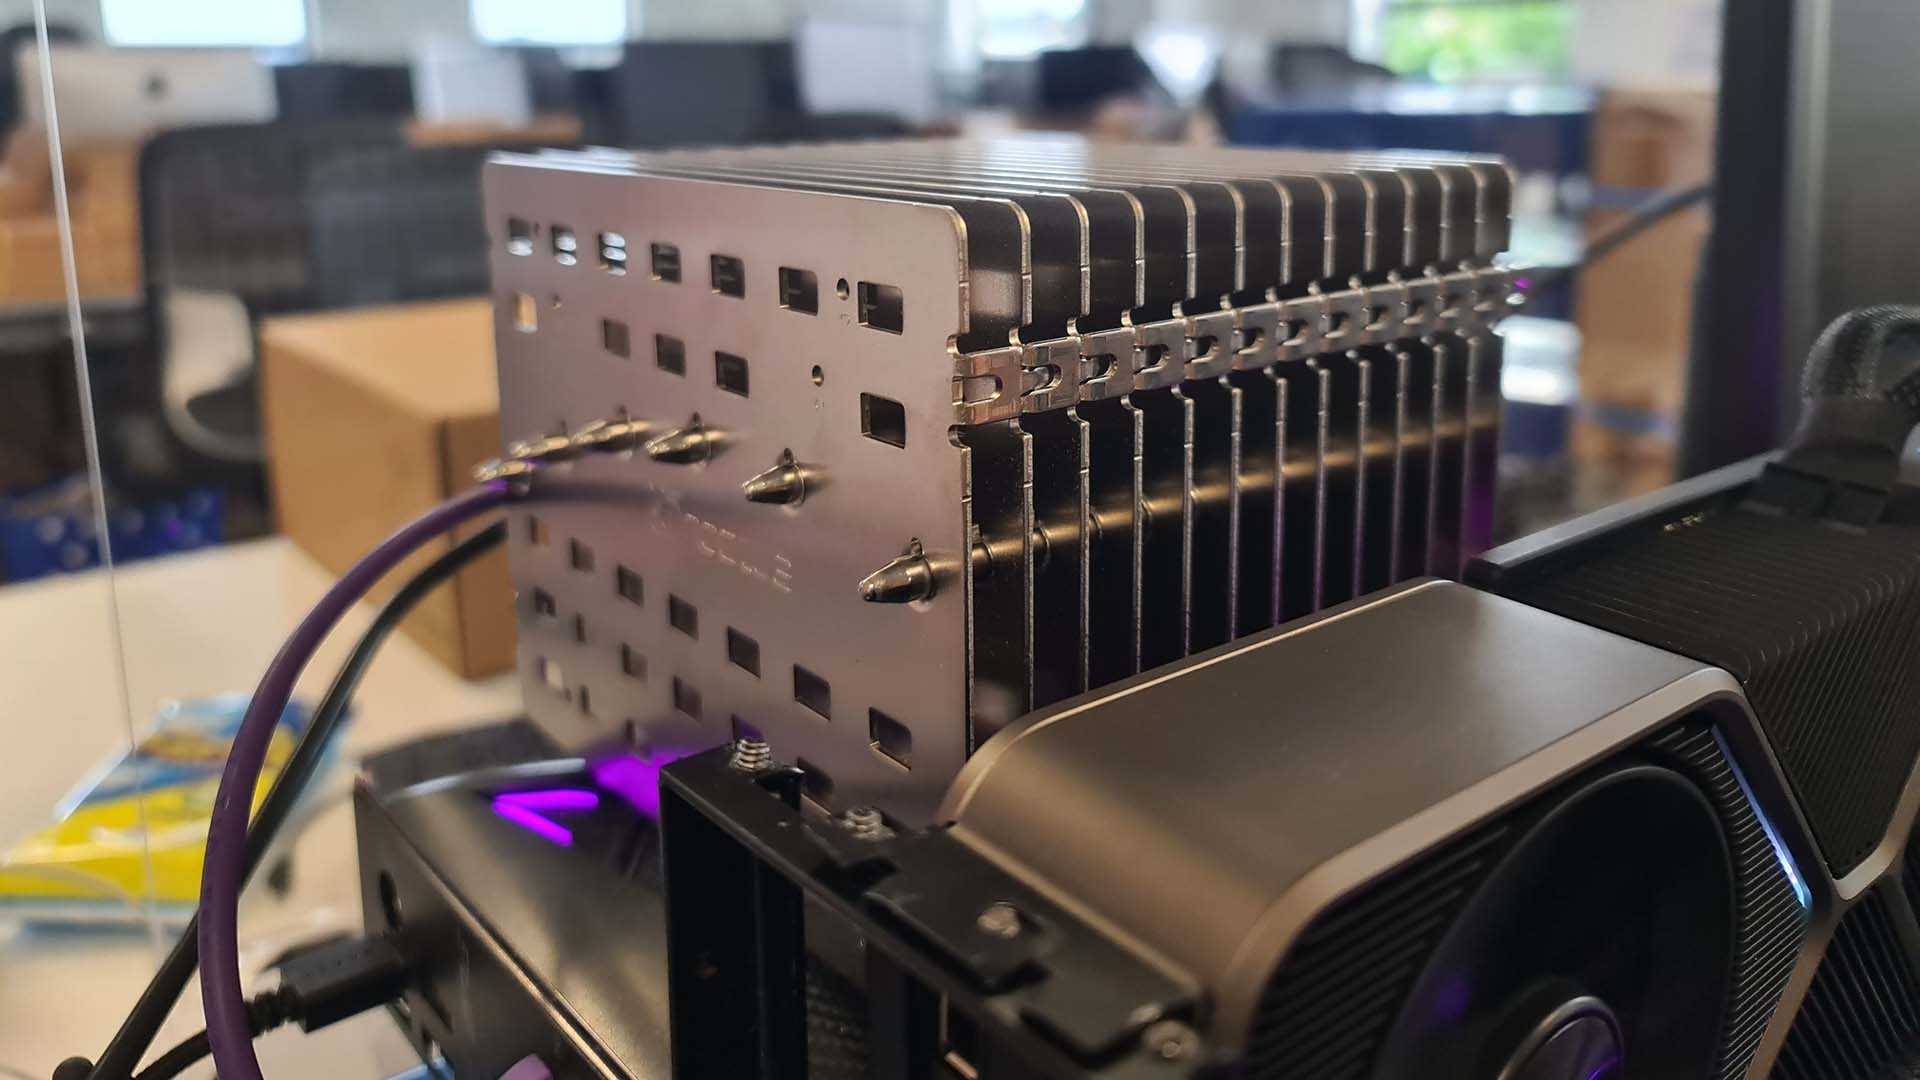 The Noctua NH-P1 air cooler mounted on an open-bed test bench with pink RGB lighting